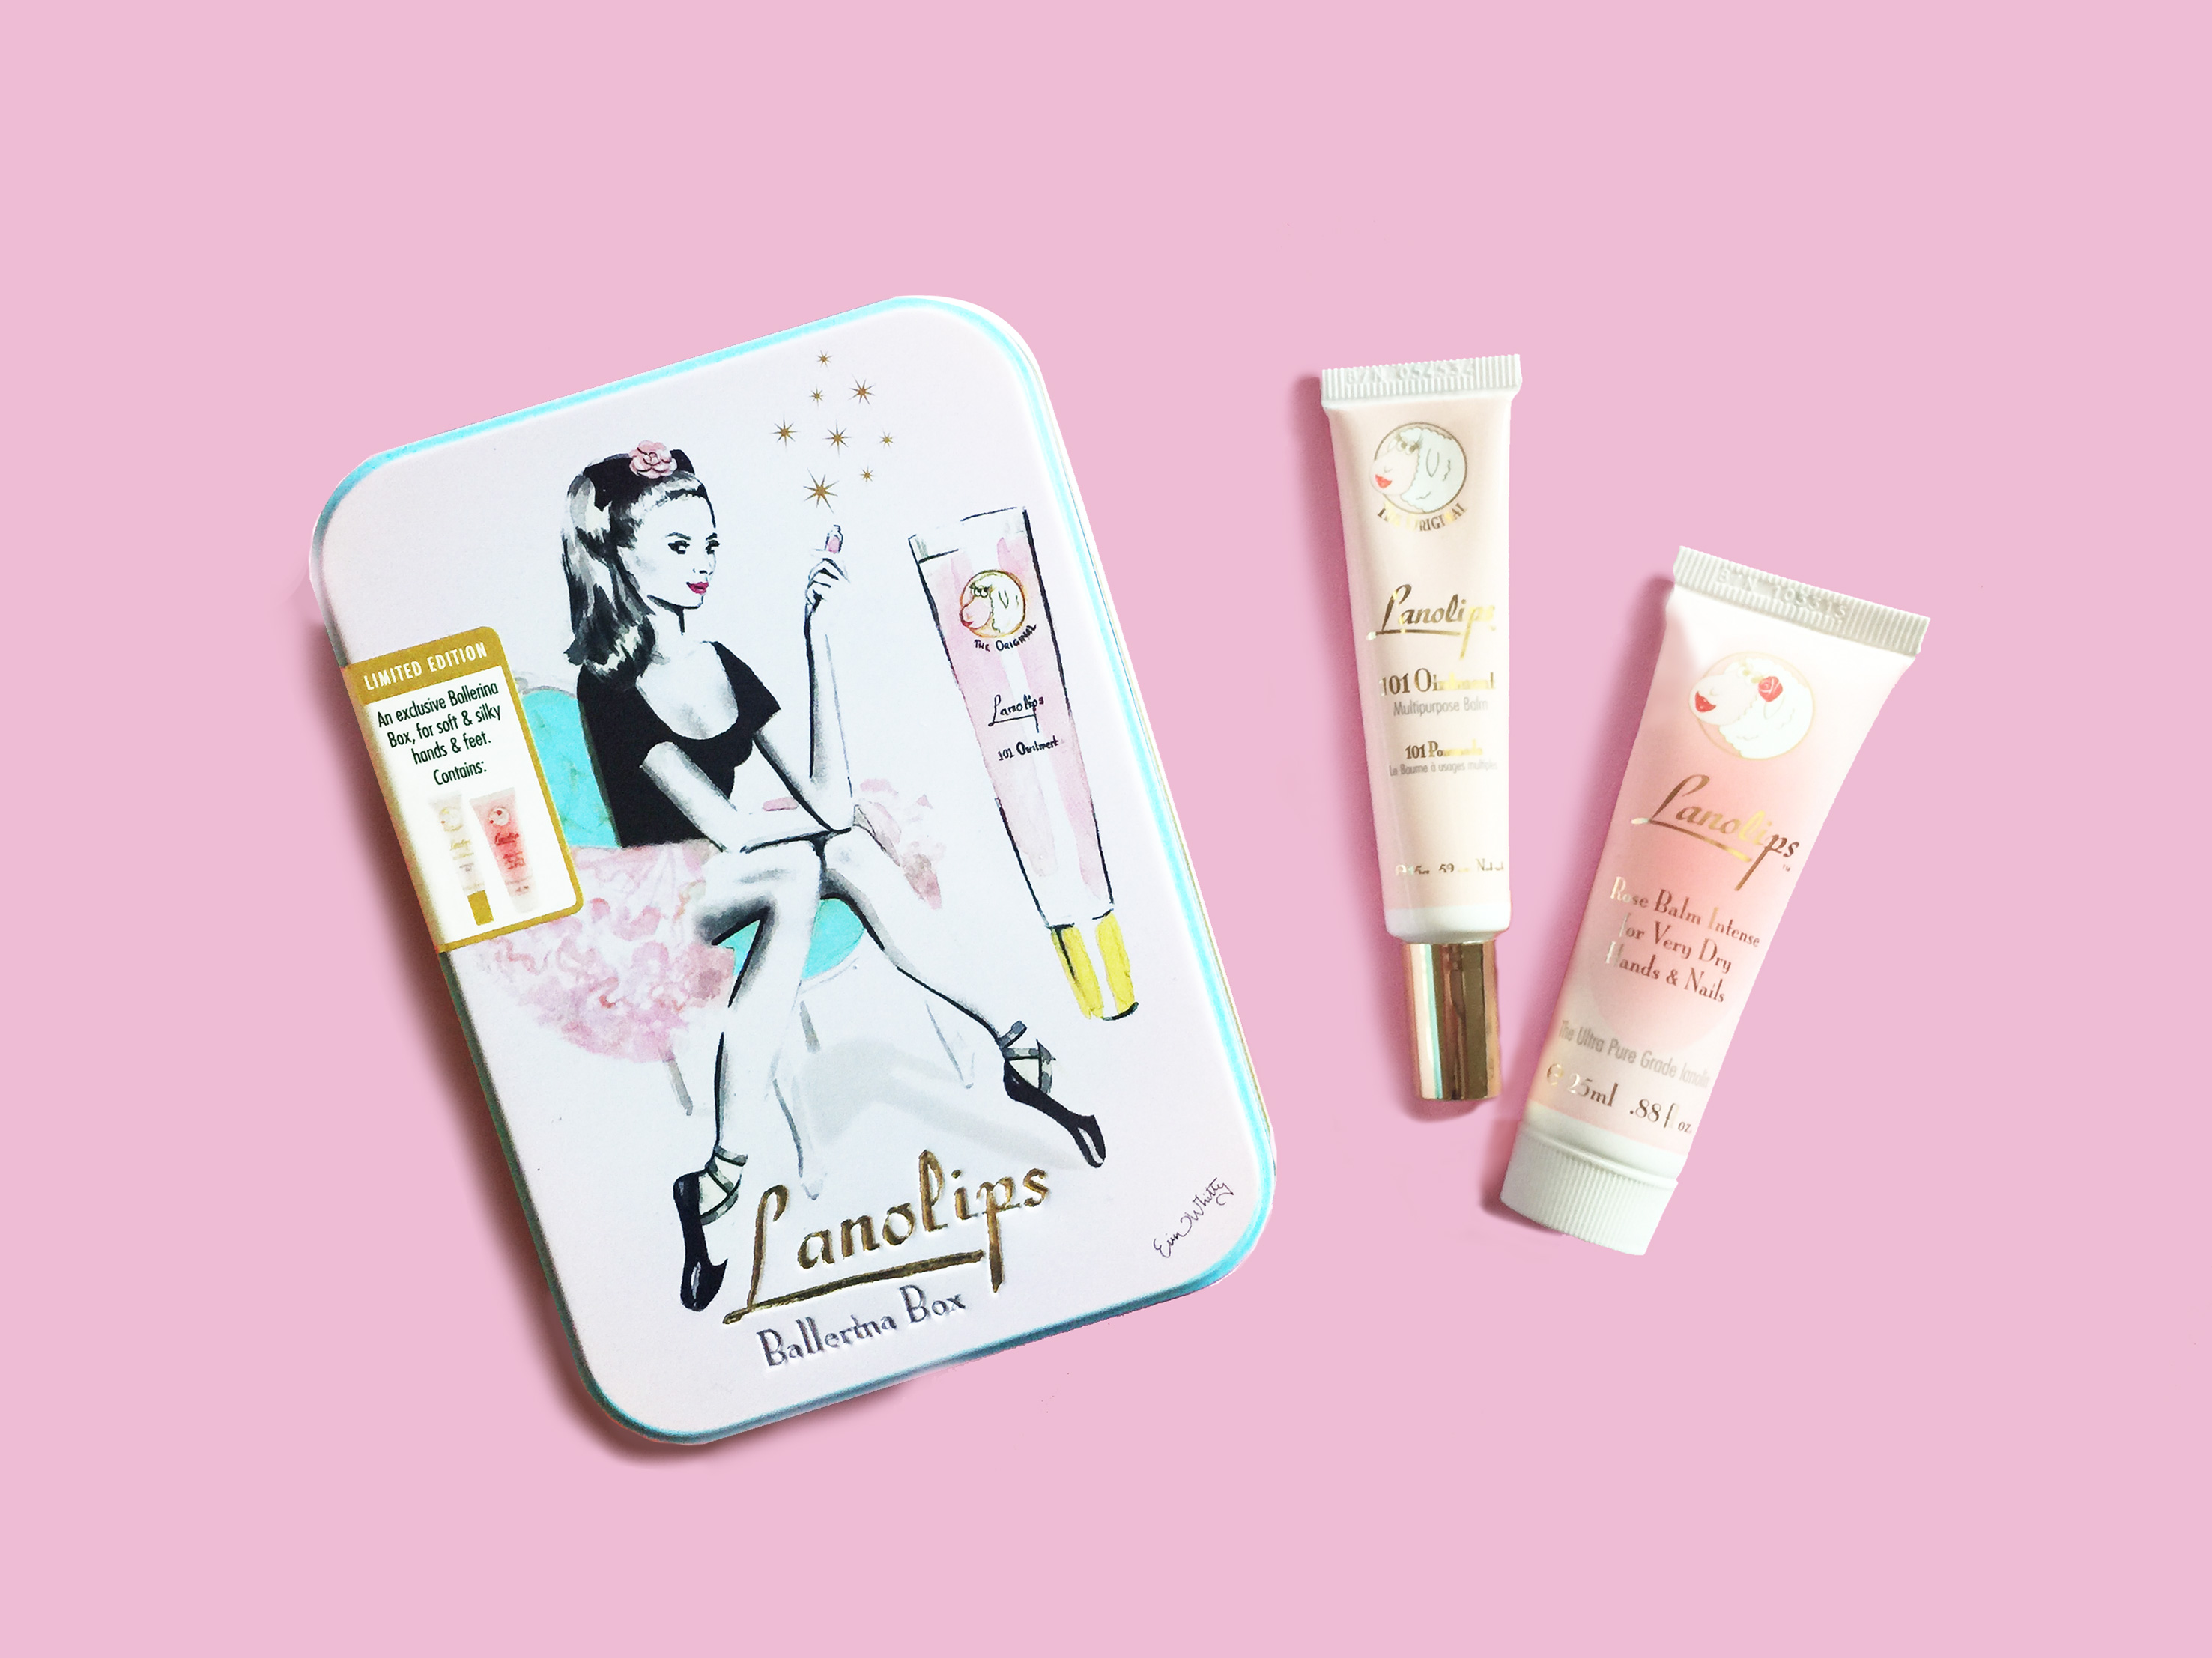 Lanolips Ballerina Box Tin